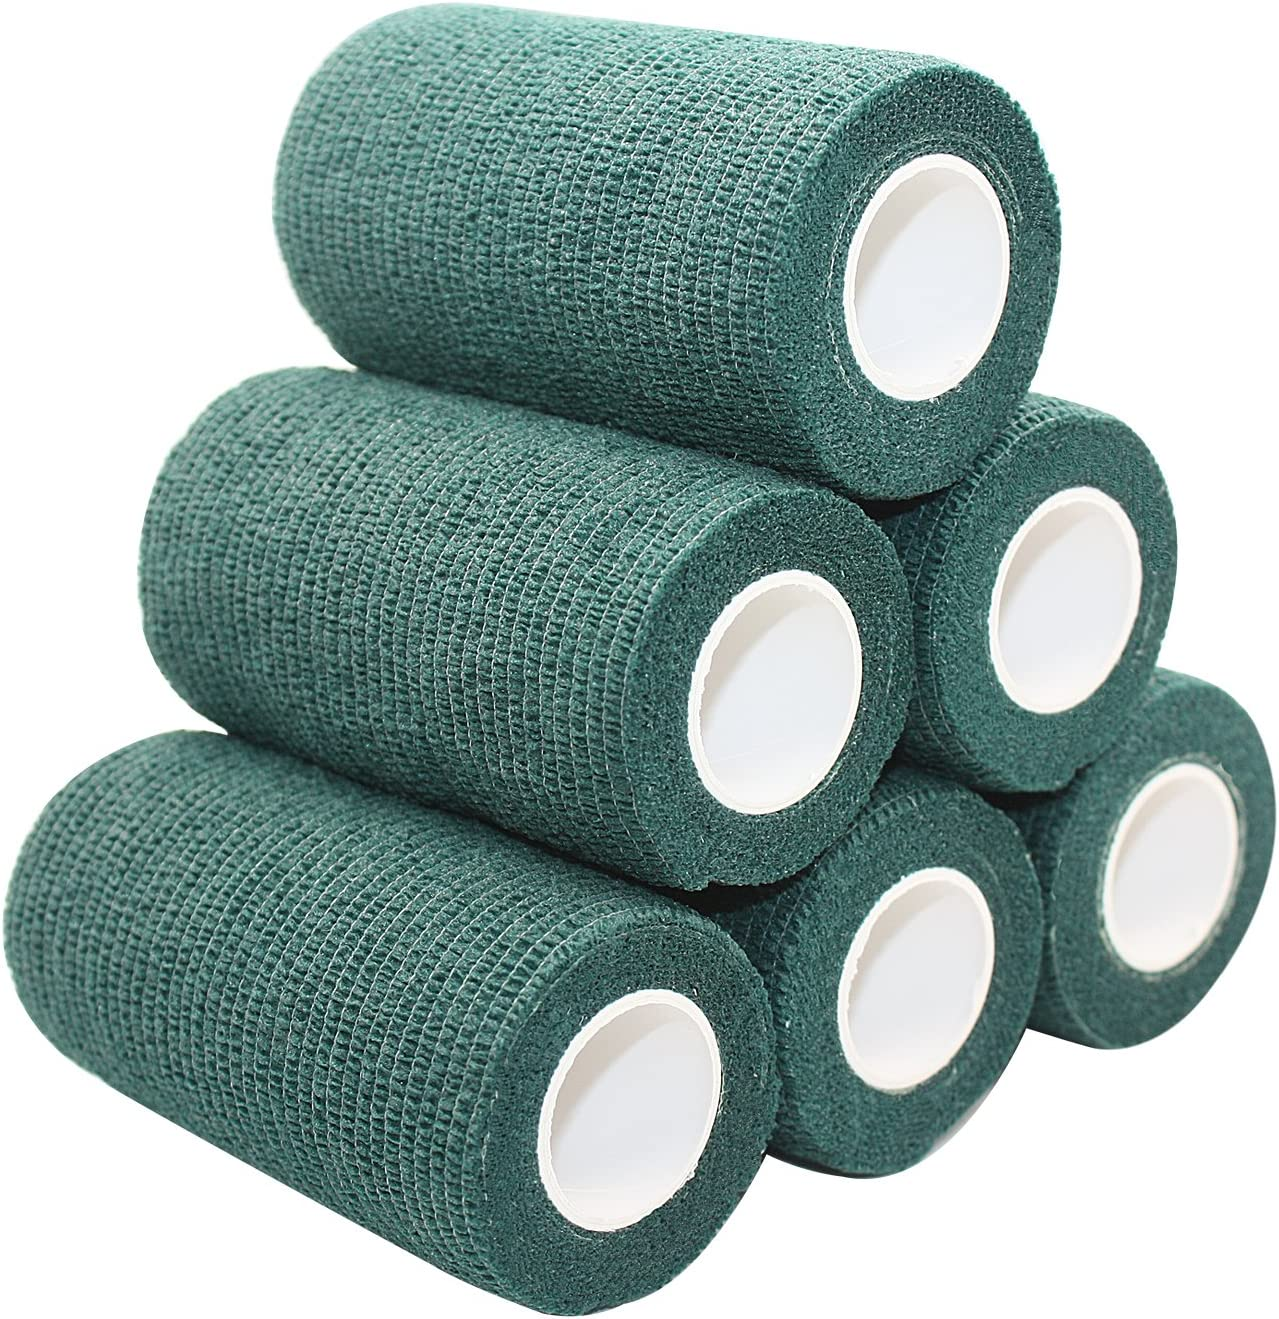 100 Rolls Mixed Cohesive Bandages Roll Vet Wrap 10cmx4.5m Sports Animal Firstaid